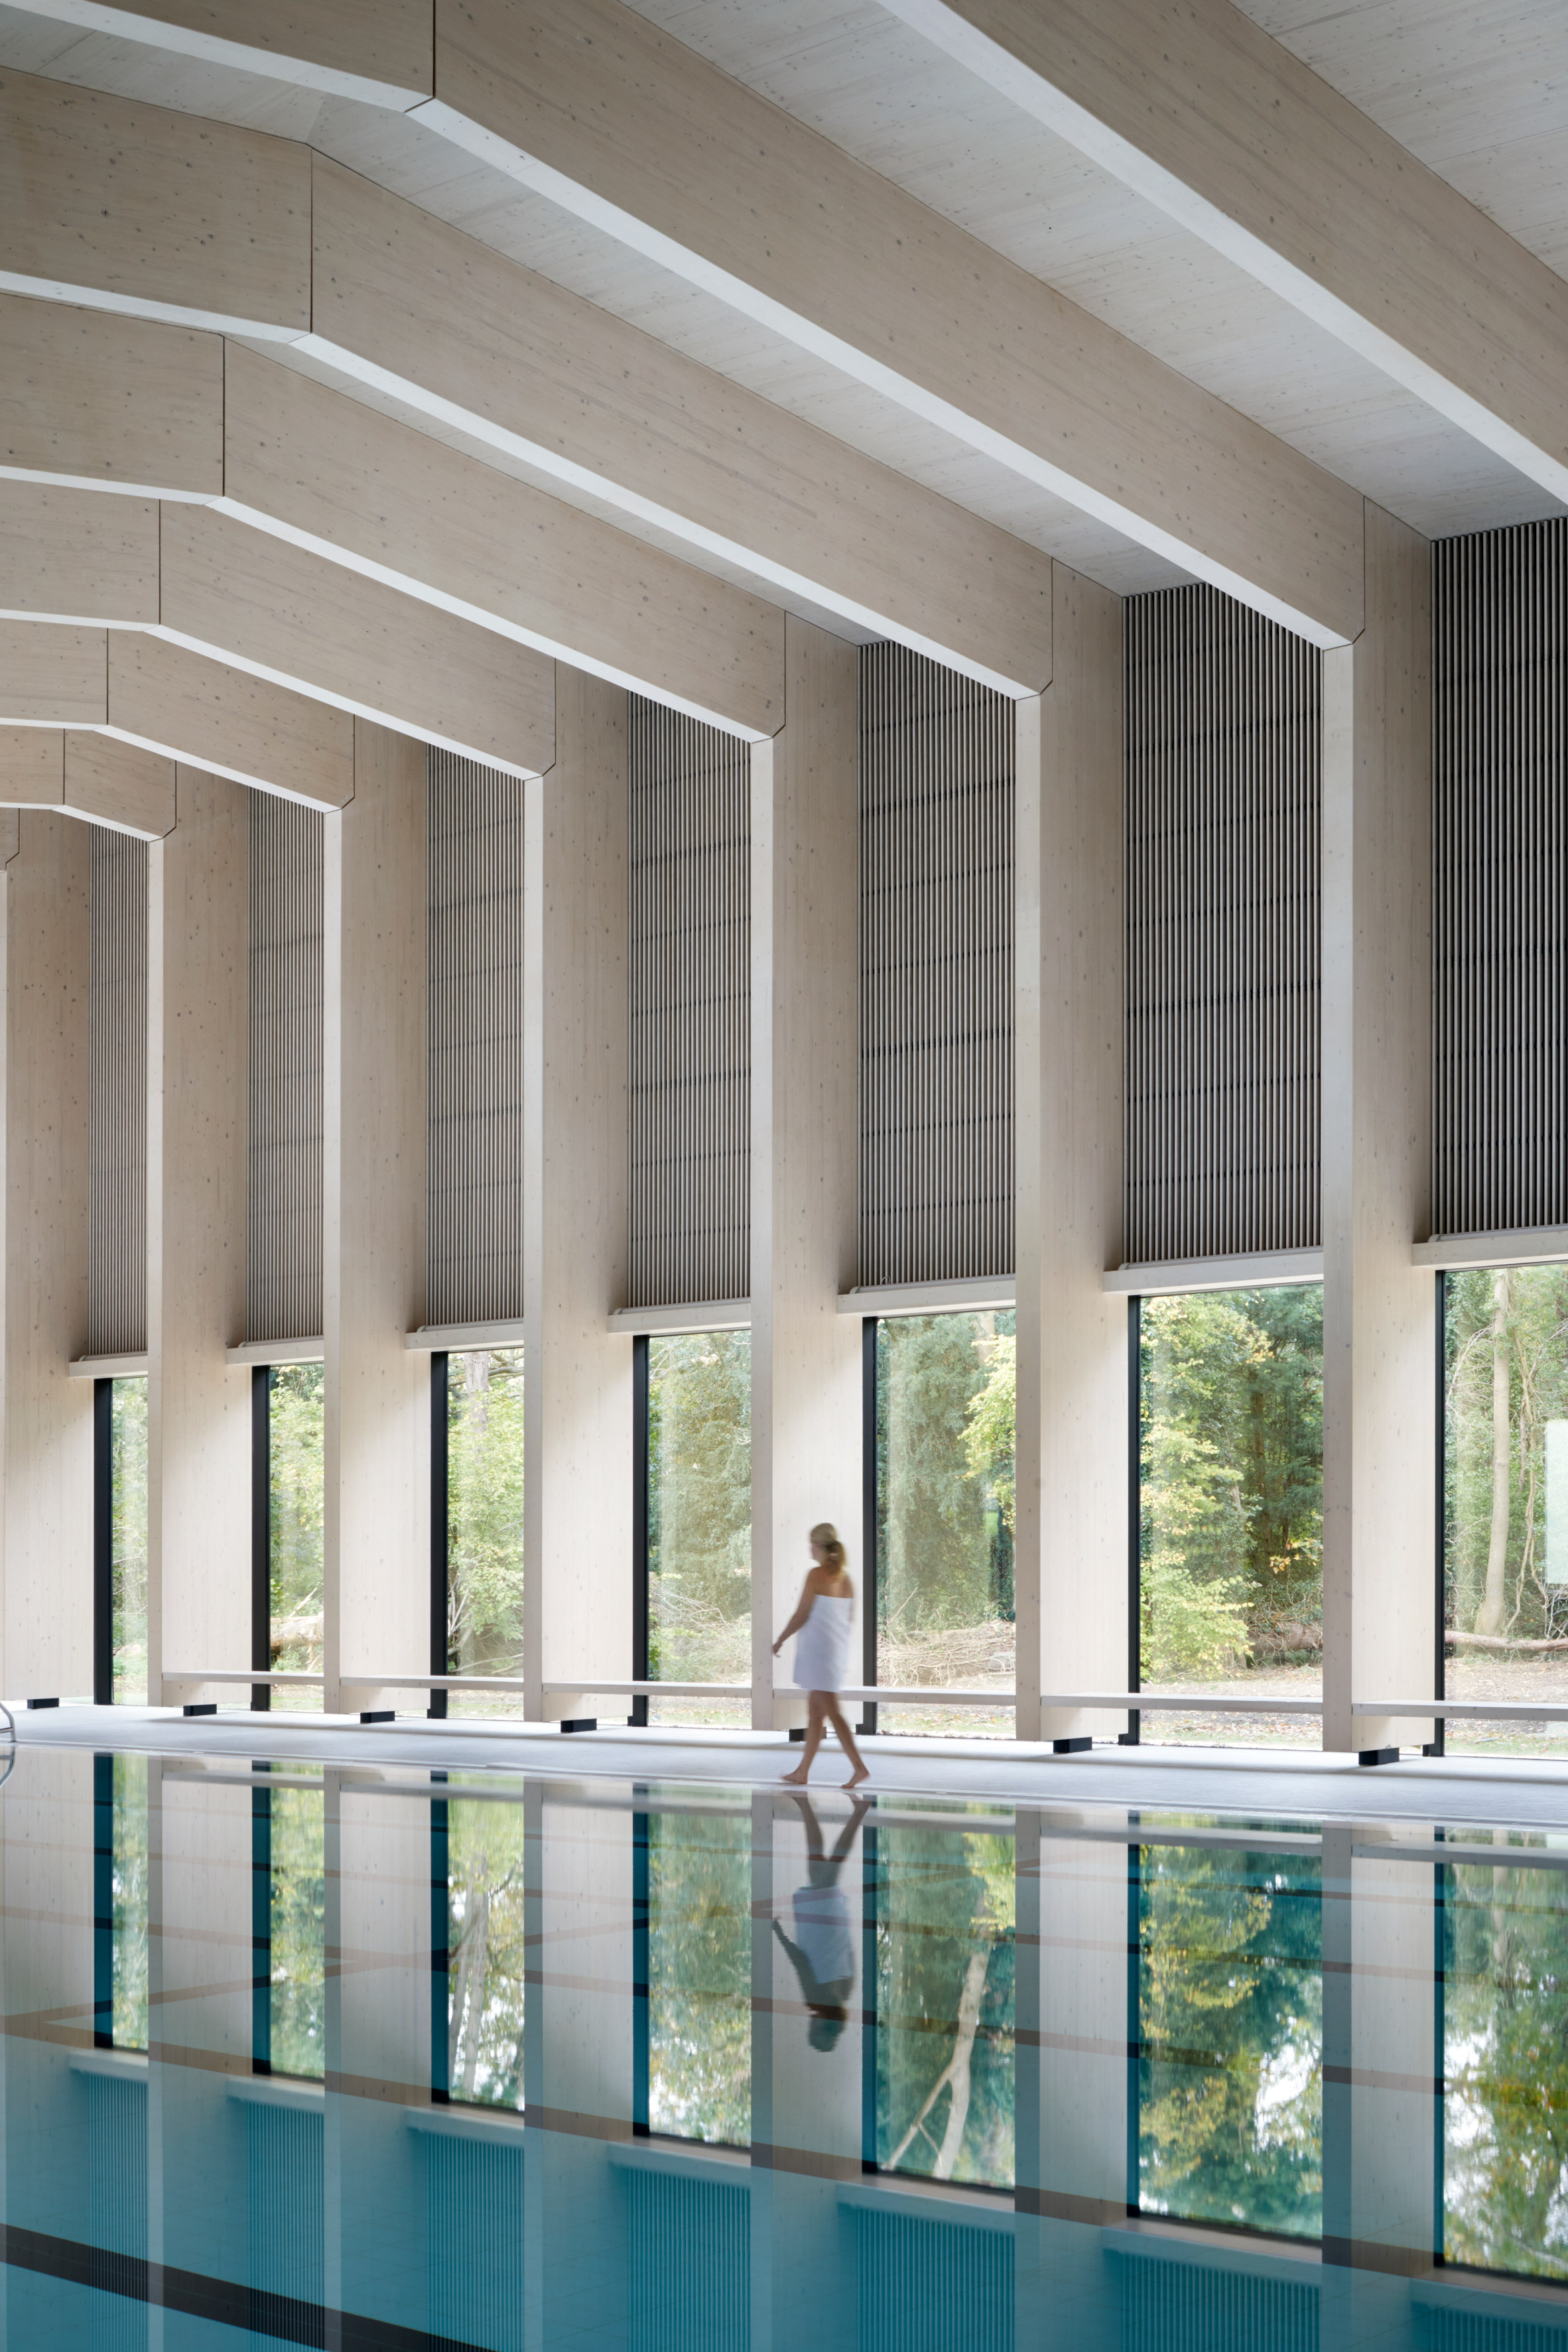 British firm HawkinsBrown has completed a swimming-pool building at a school in Surrey, England, featuring an exposed timber frame that incorporates windows looking out onto the surrounding woodland.